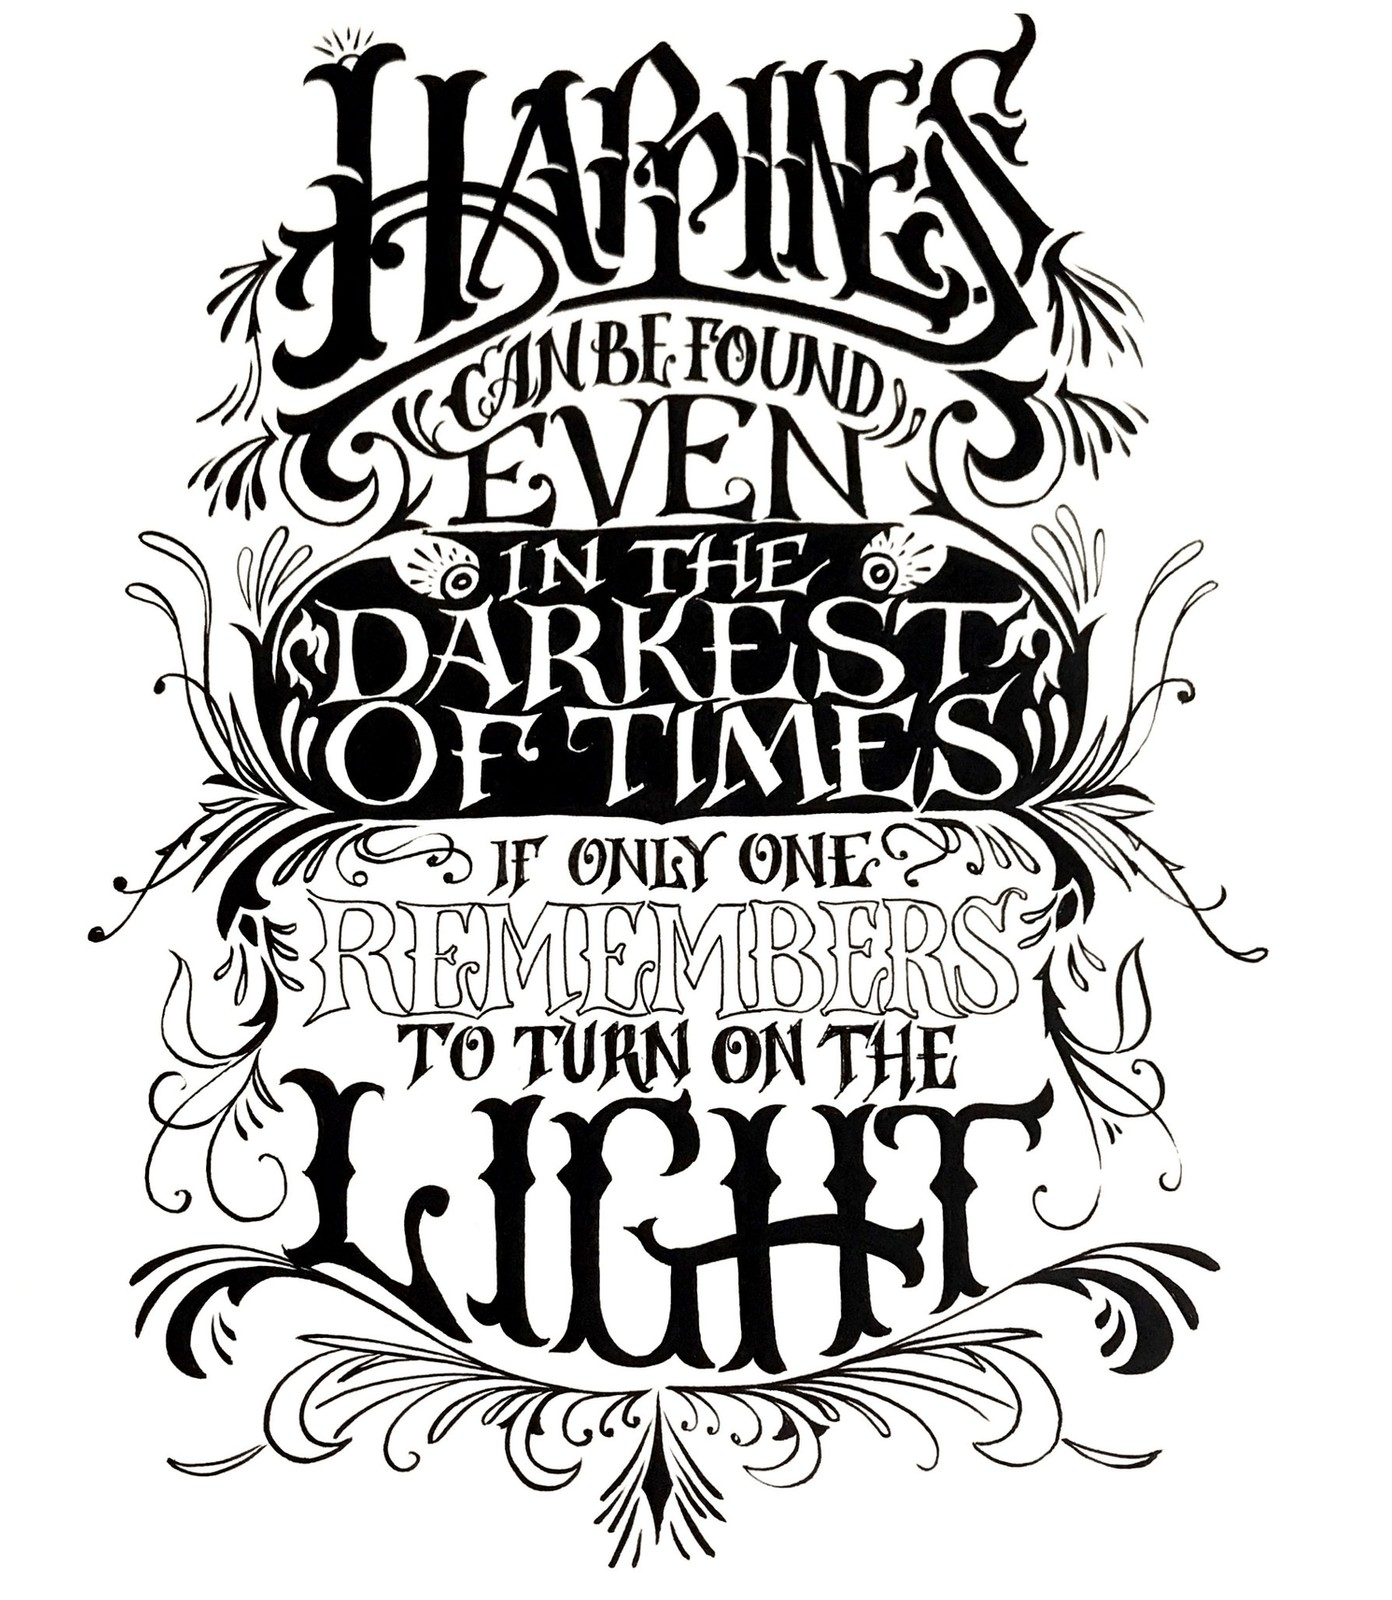 Harry Potter quote.